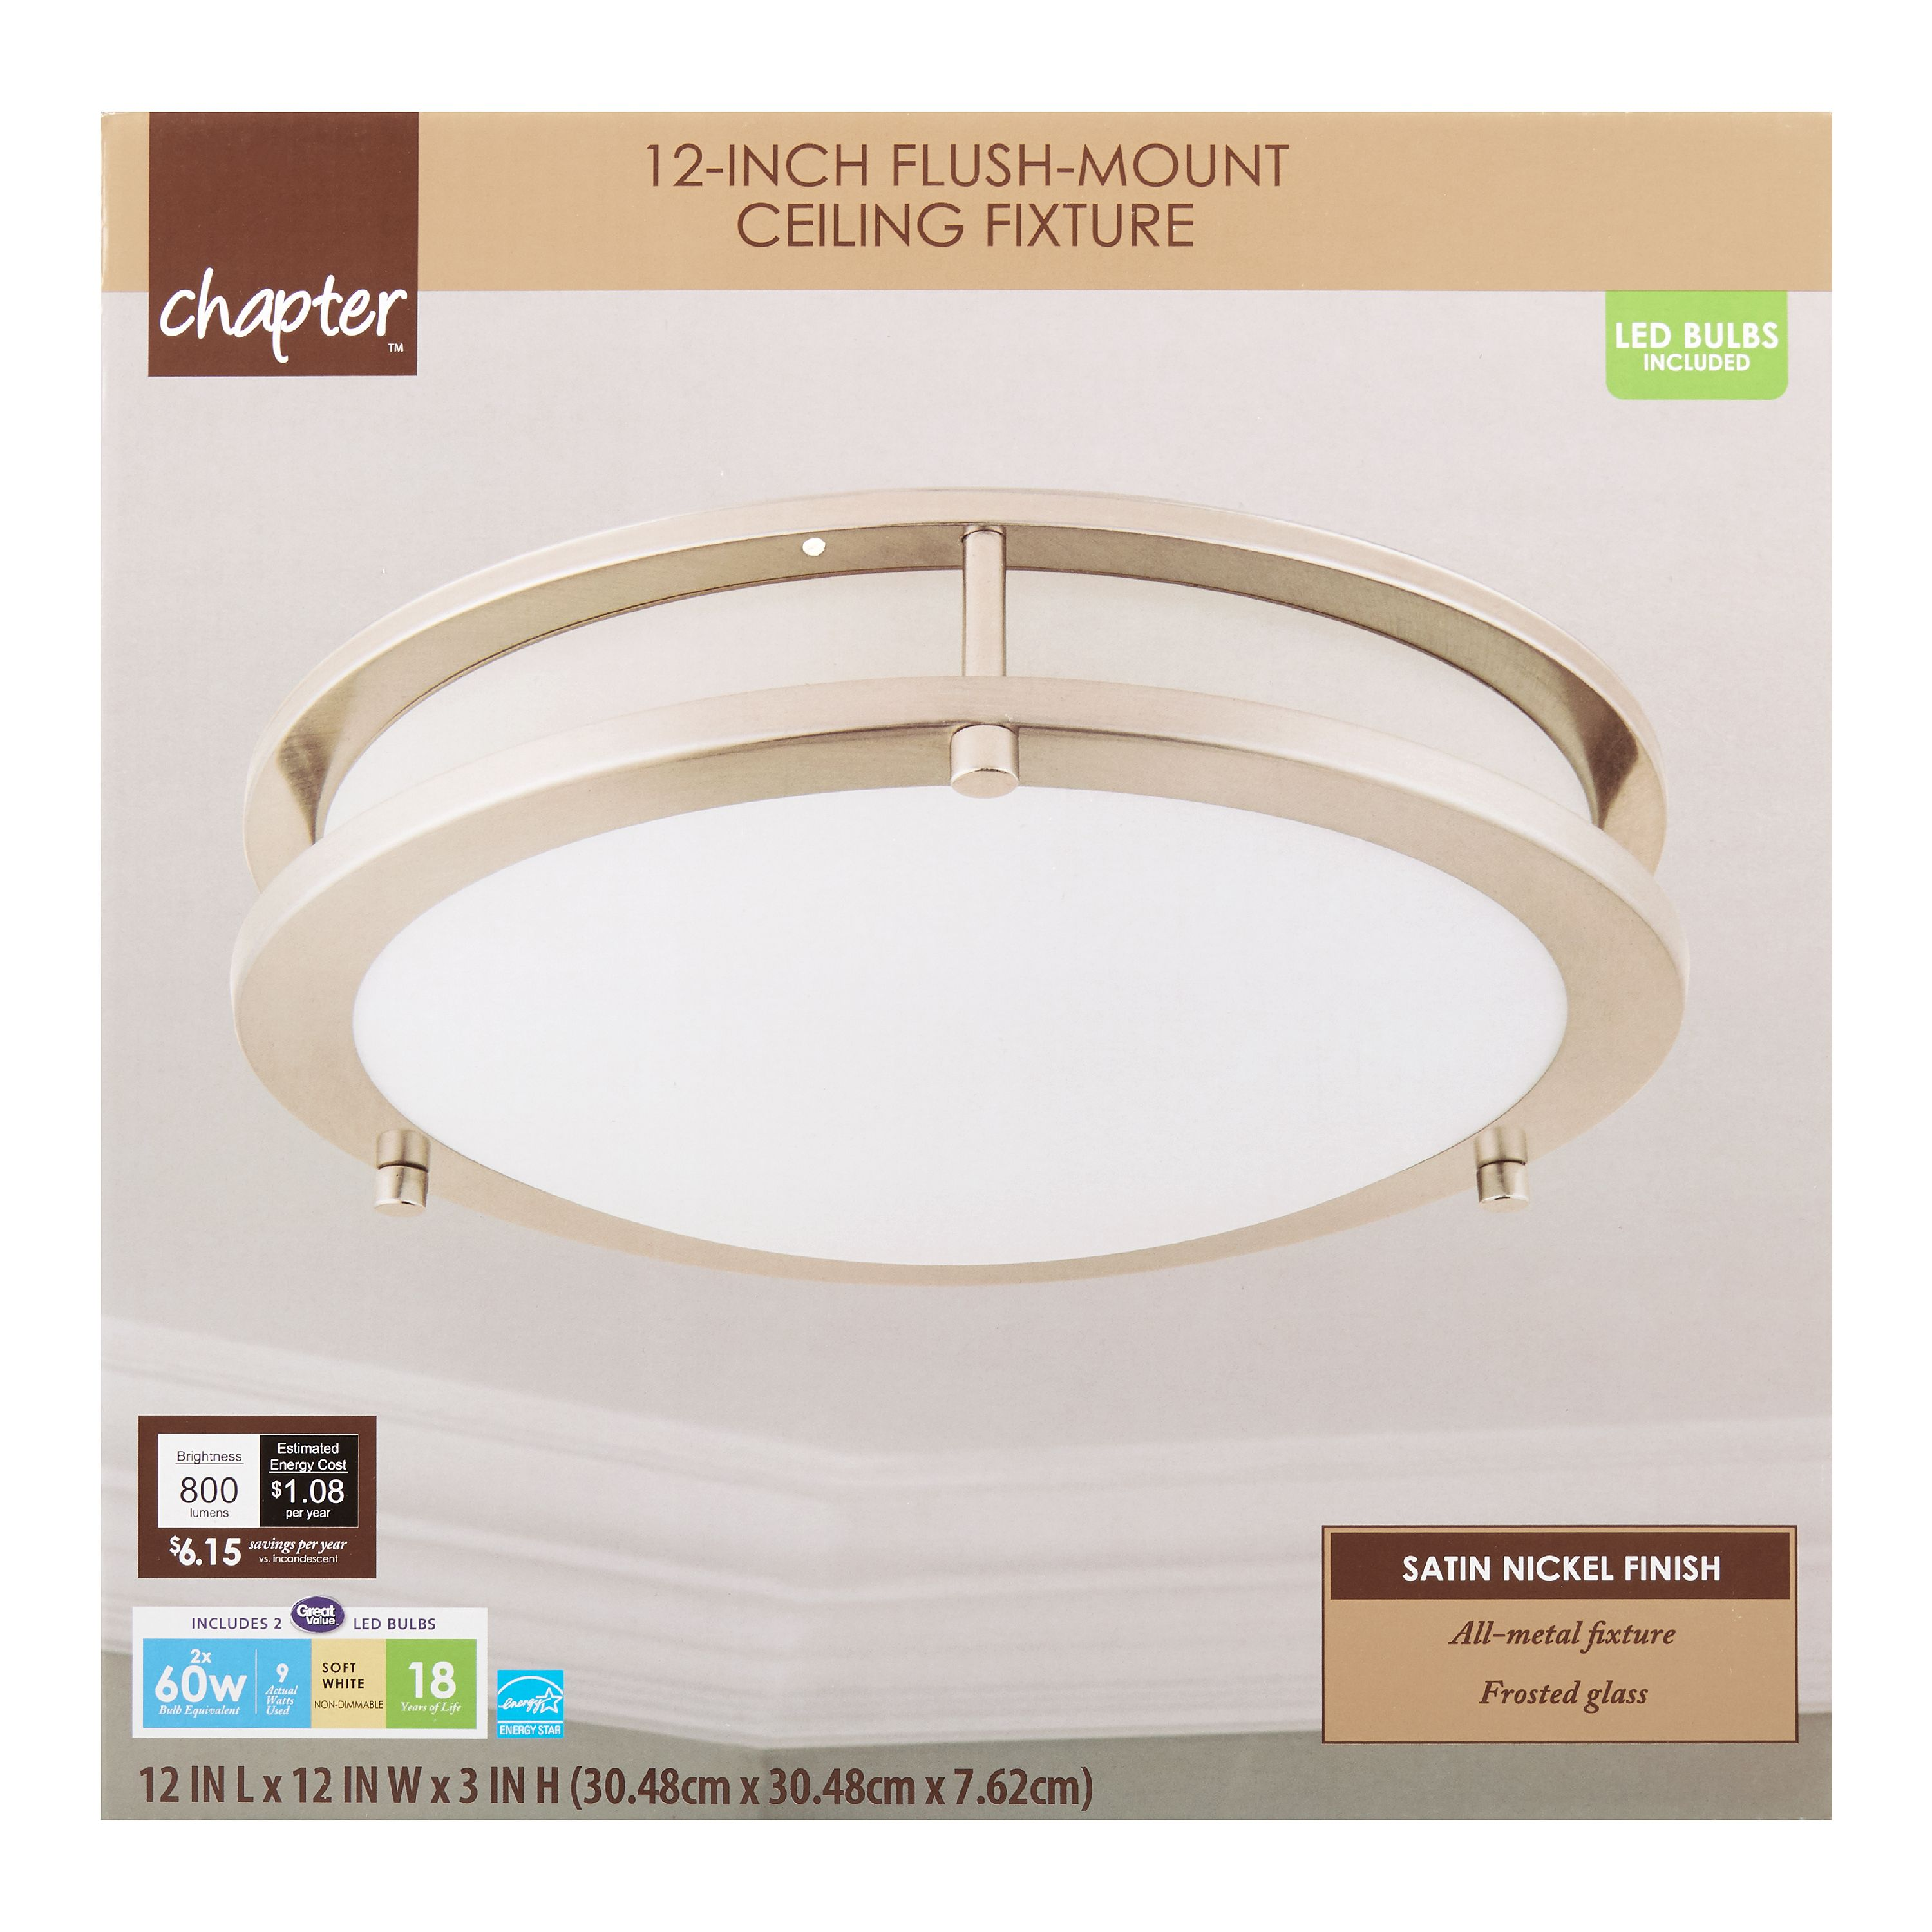 "Chapter 12"" LED Decorative Flush-Mount Ceiling Fixture, Satin Nickel"